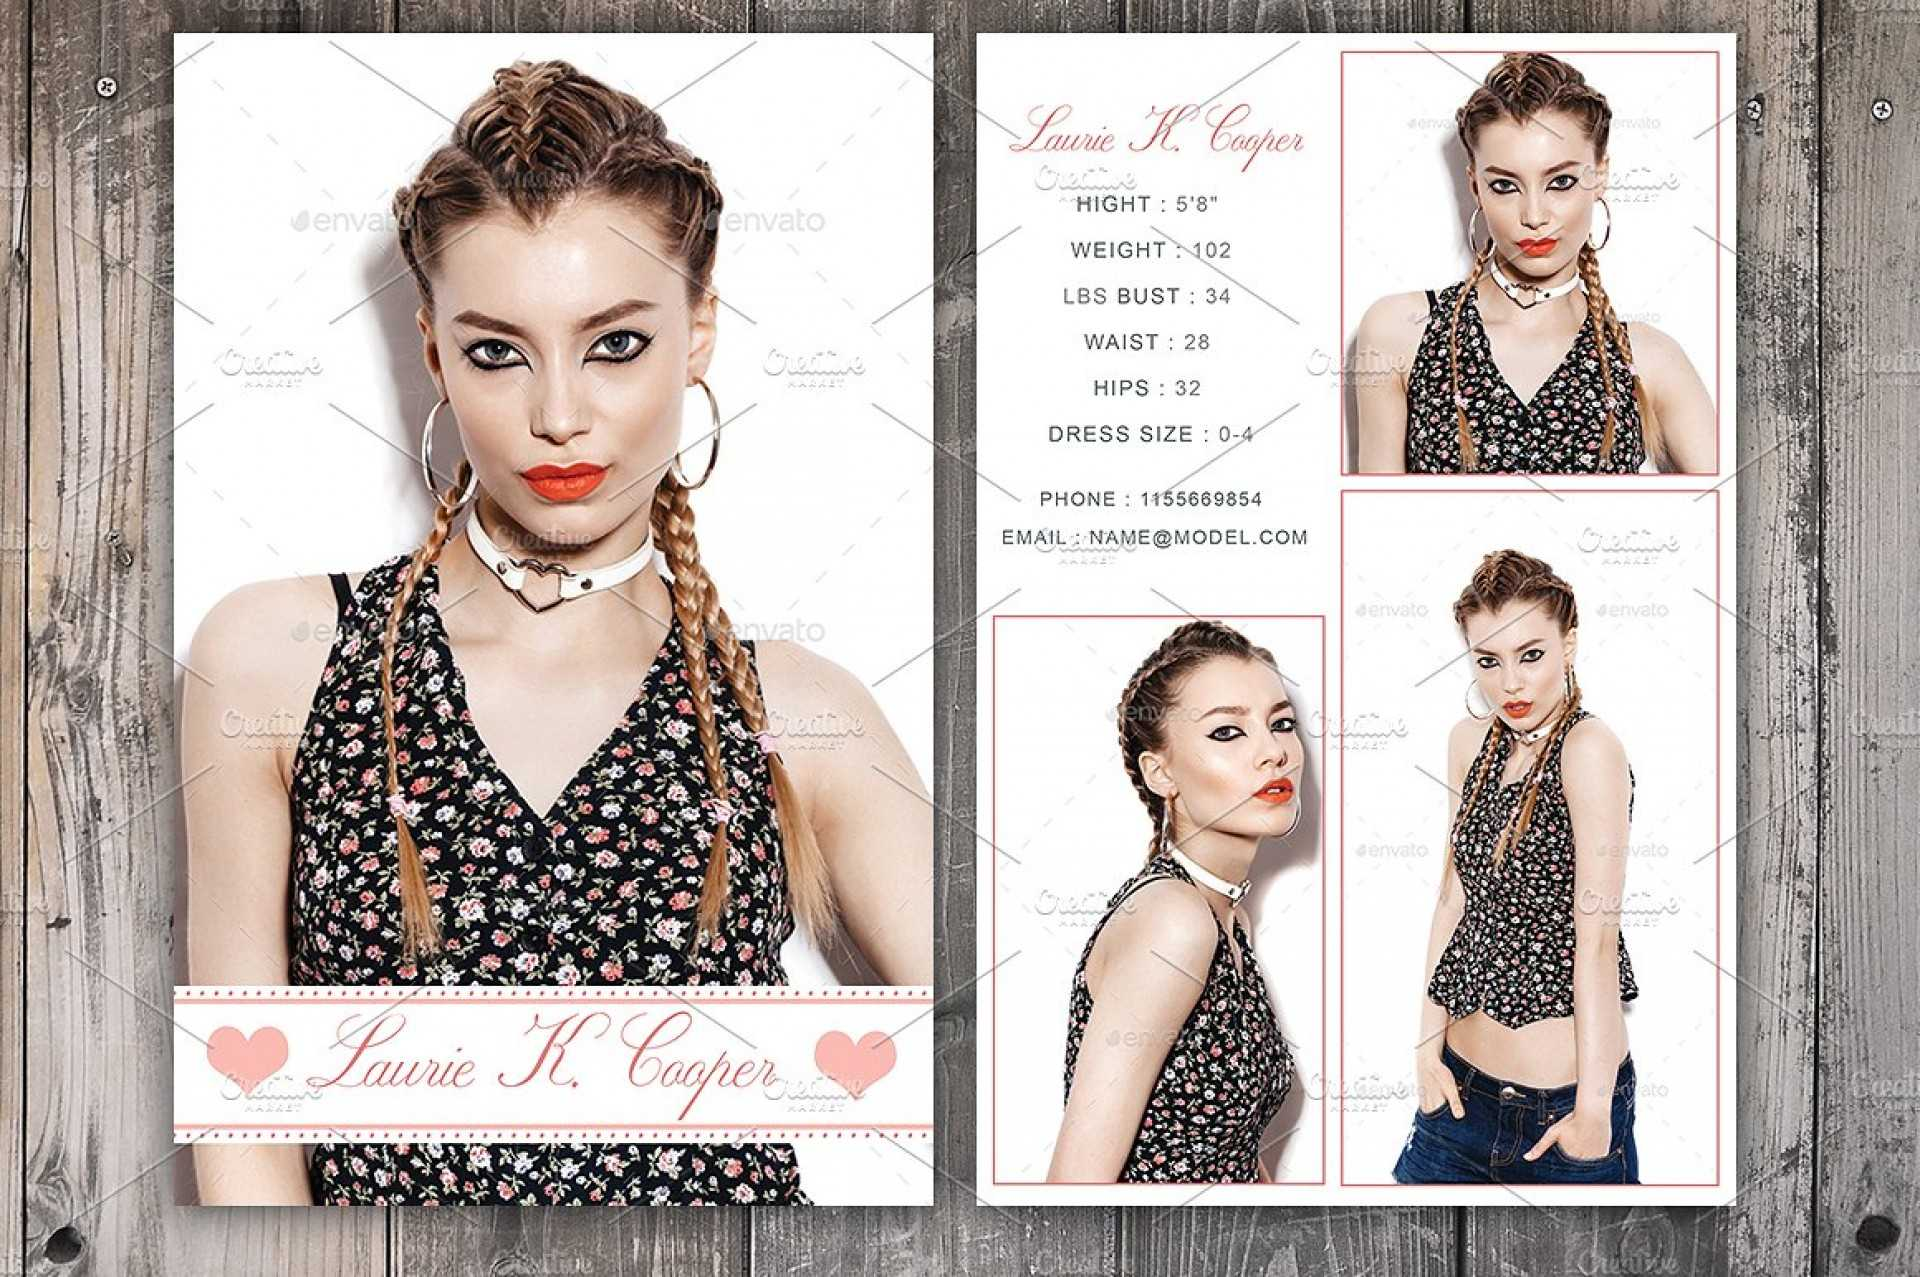 Free Model Comp Card Templates - C Punkt Throughout Free Model Comp Card Template Psd